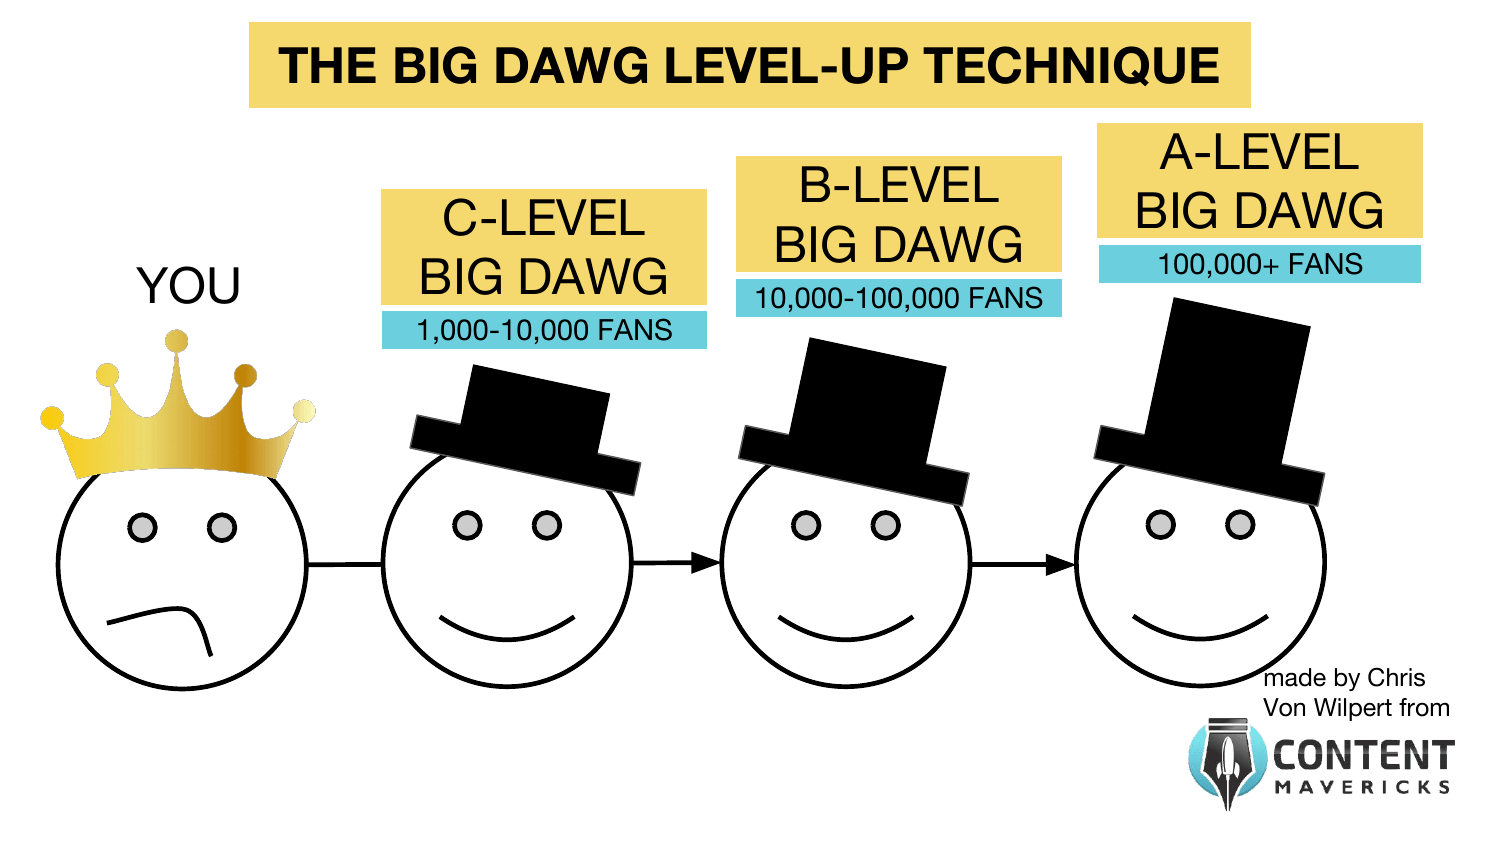 big dawg level up technique image